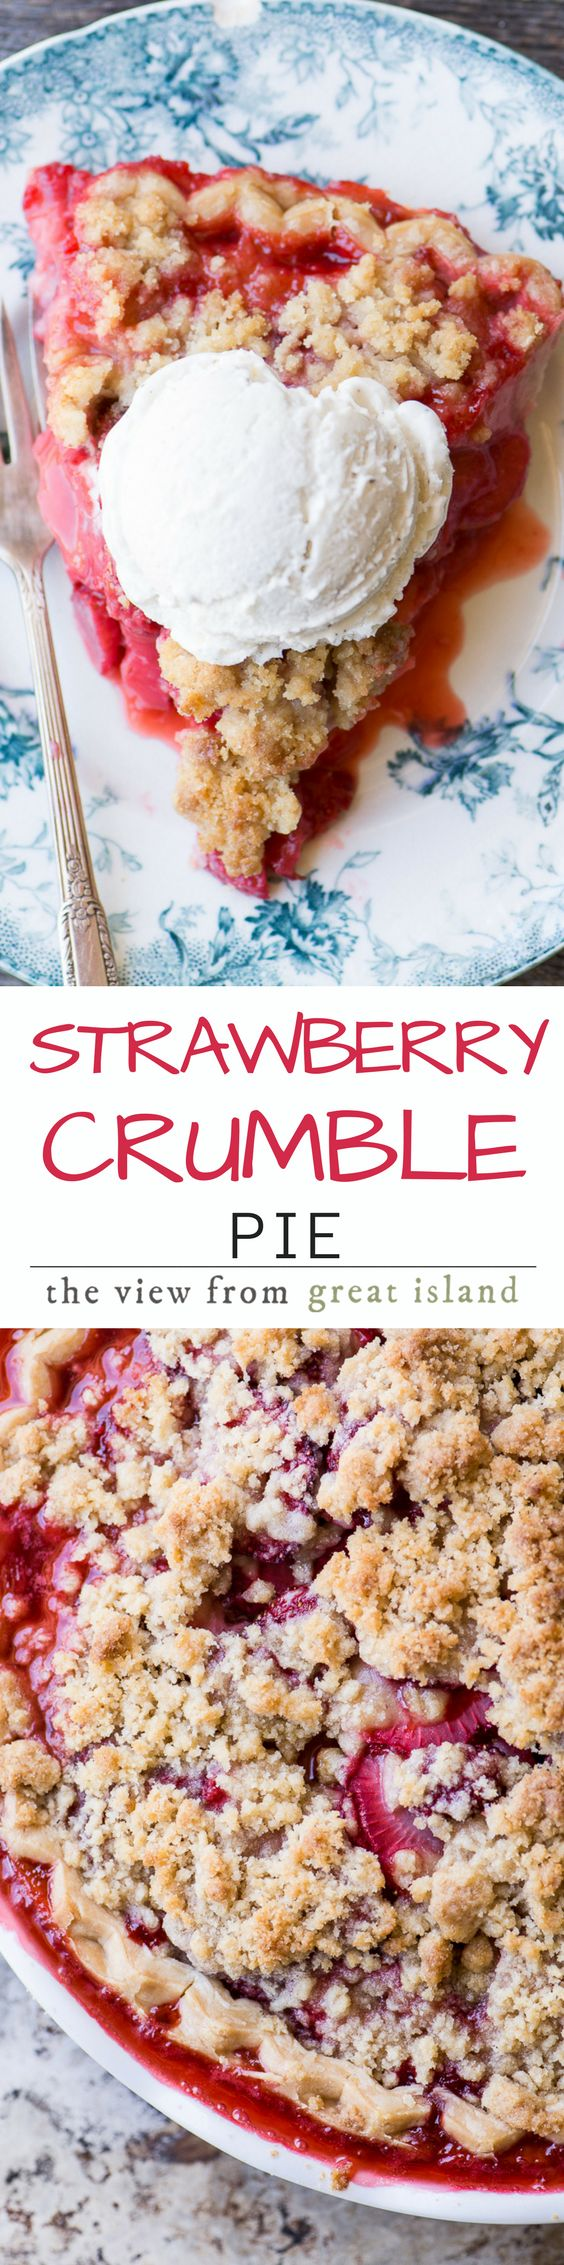 Strawberry Crumble Pie ~ you're not likely to come across another pie that screams spring quite as loudly this one...if spring were a pie...well, you get the idea. This one is fruity, juicy, and berrylicious. | dessert | berries | summer | Mother's Day| recipe | Memorial Day